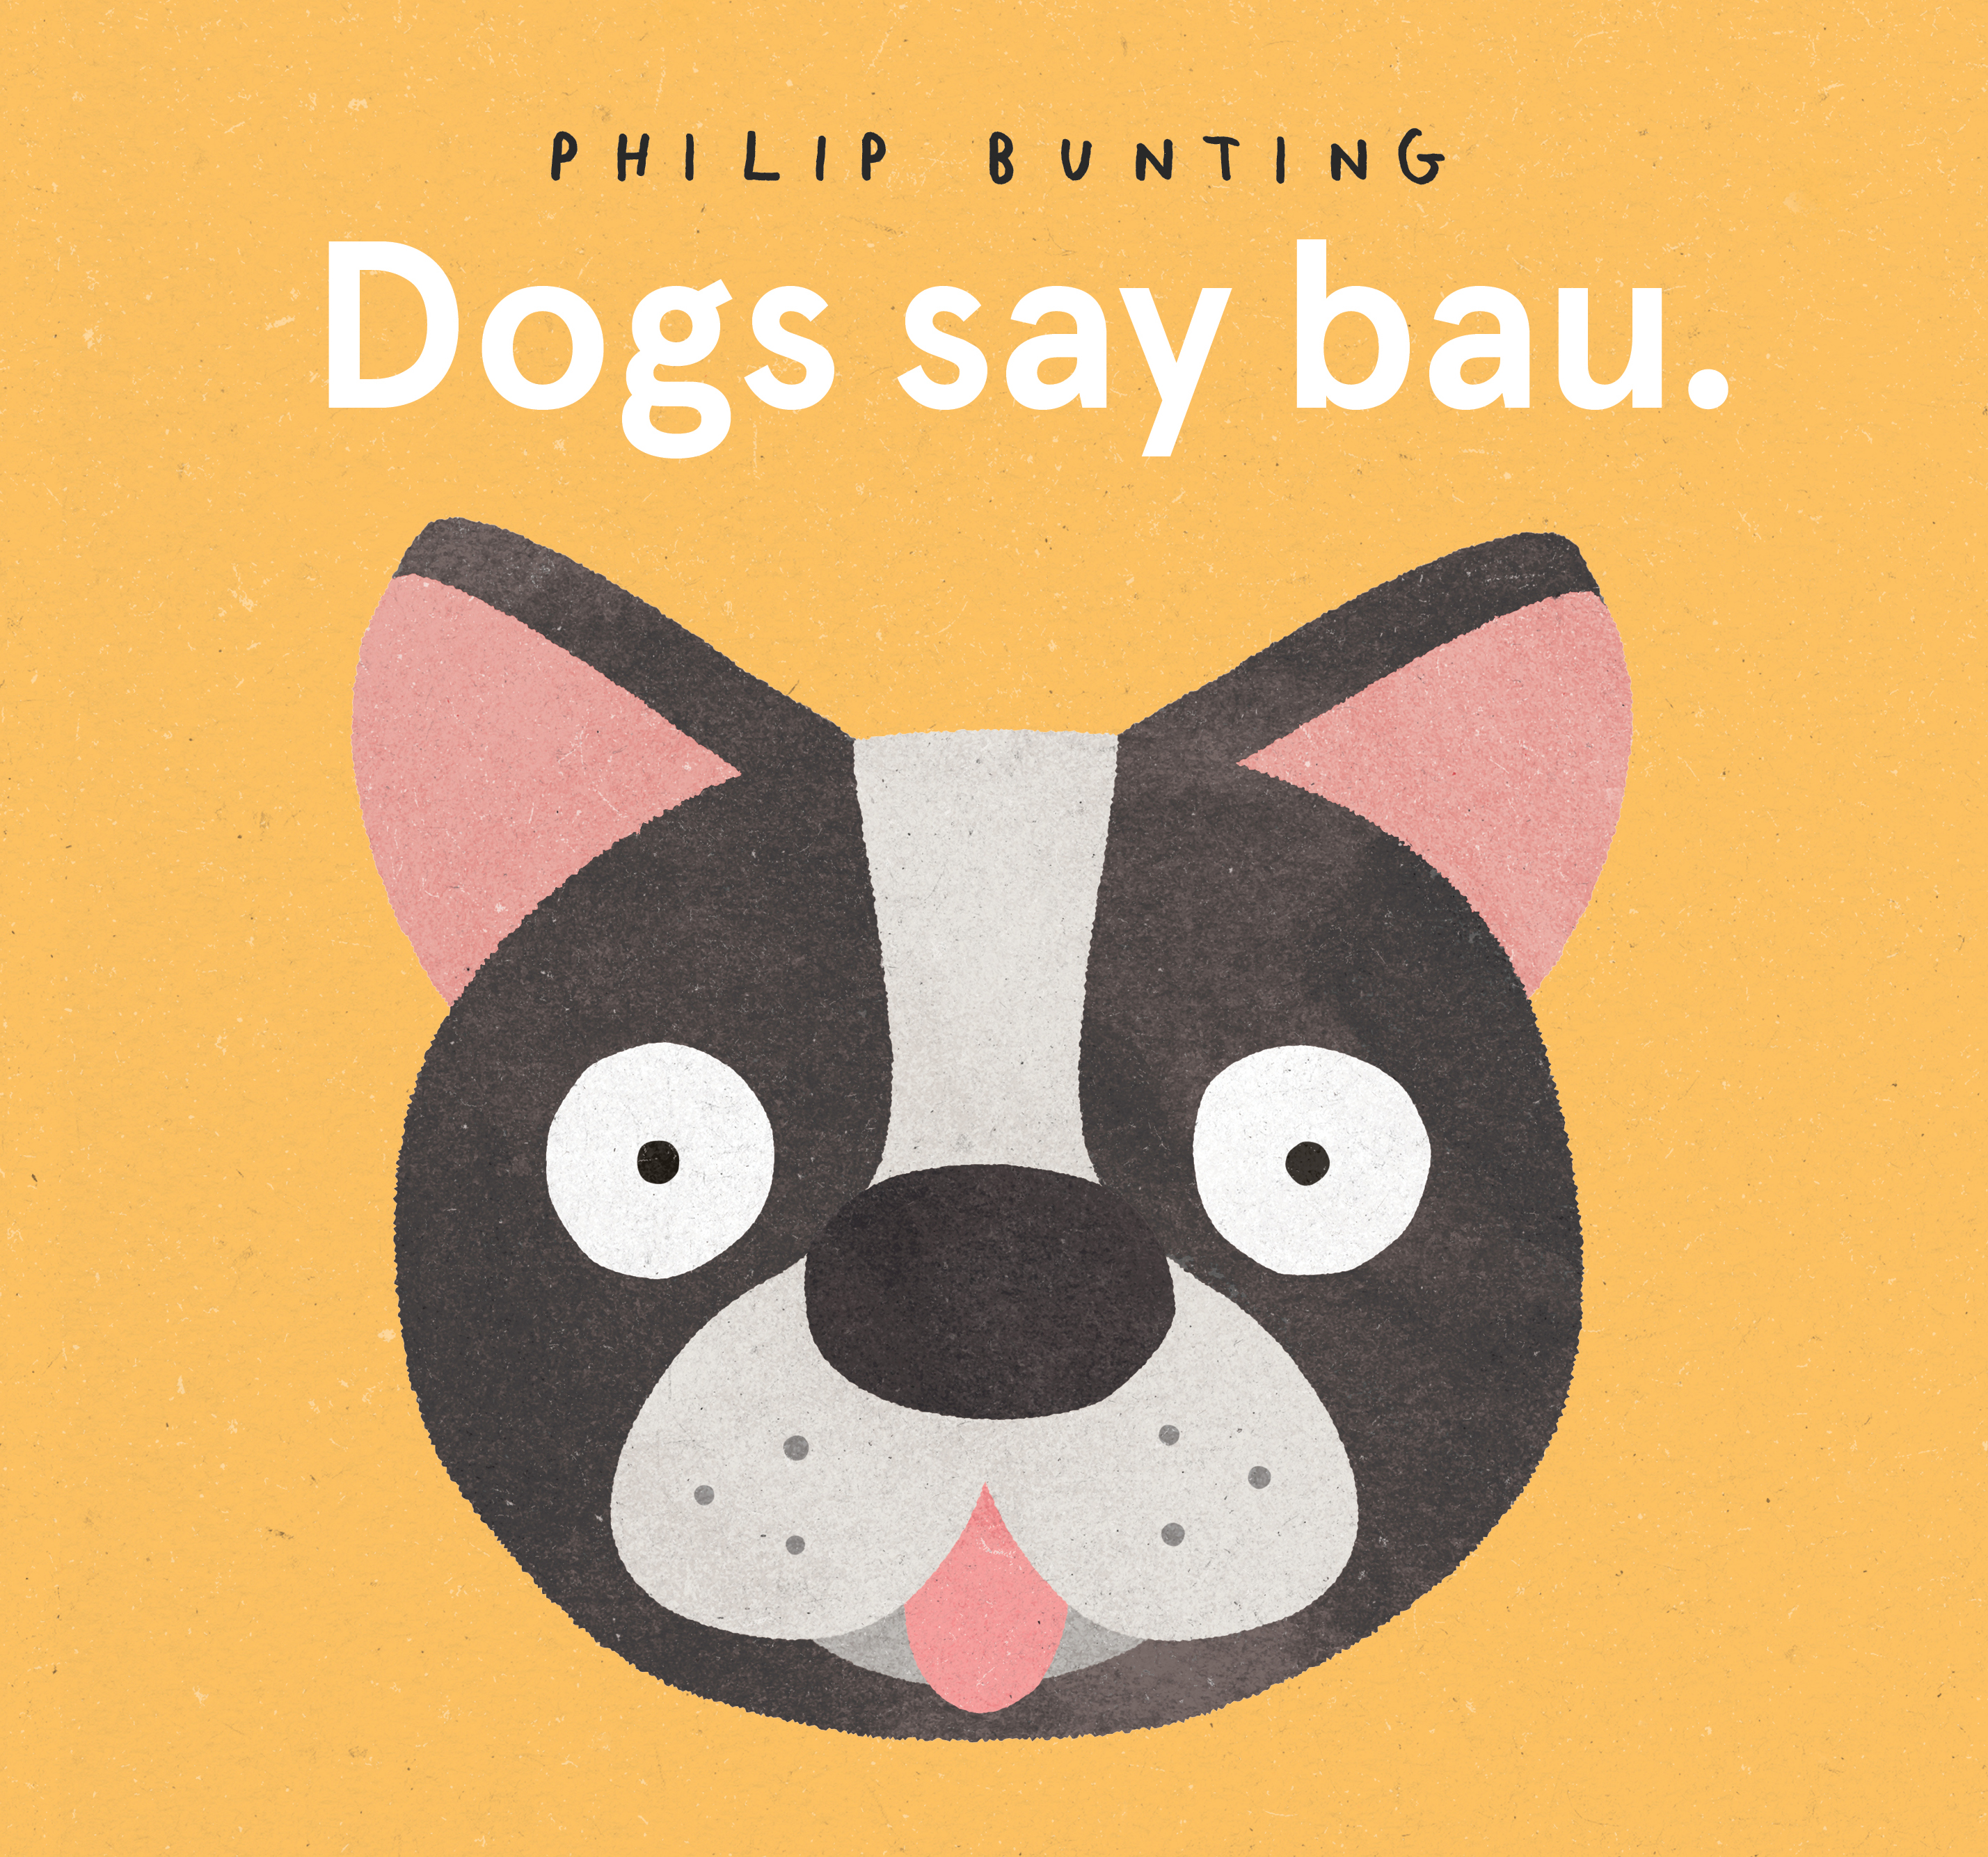 Dogs Say Bau by Philip Bunting